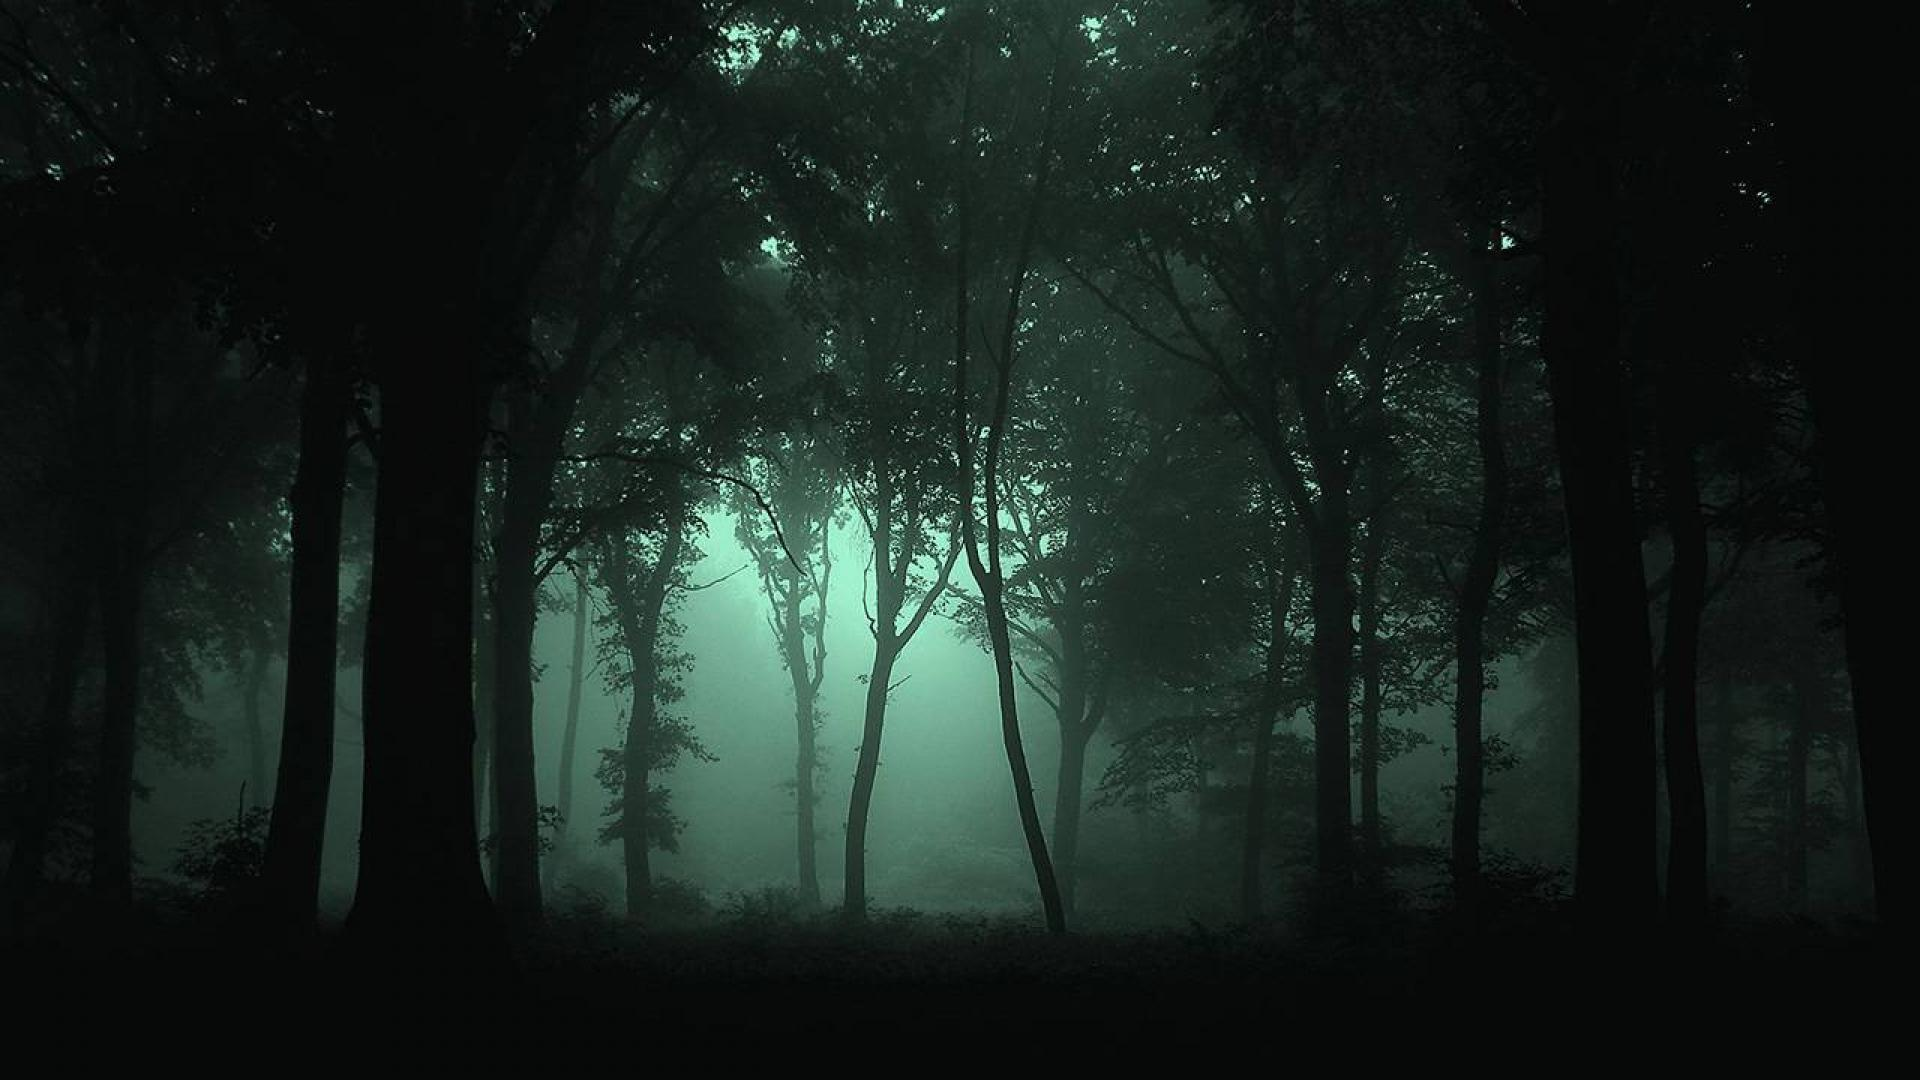 dark places forest trees - photo #10